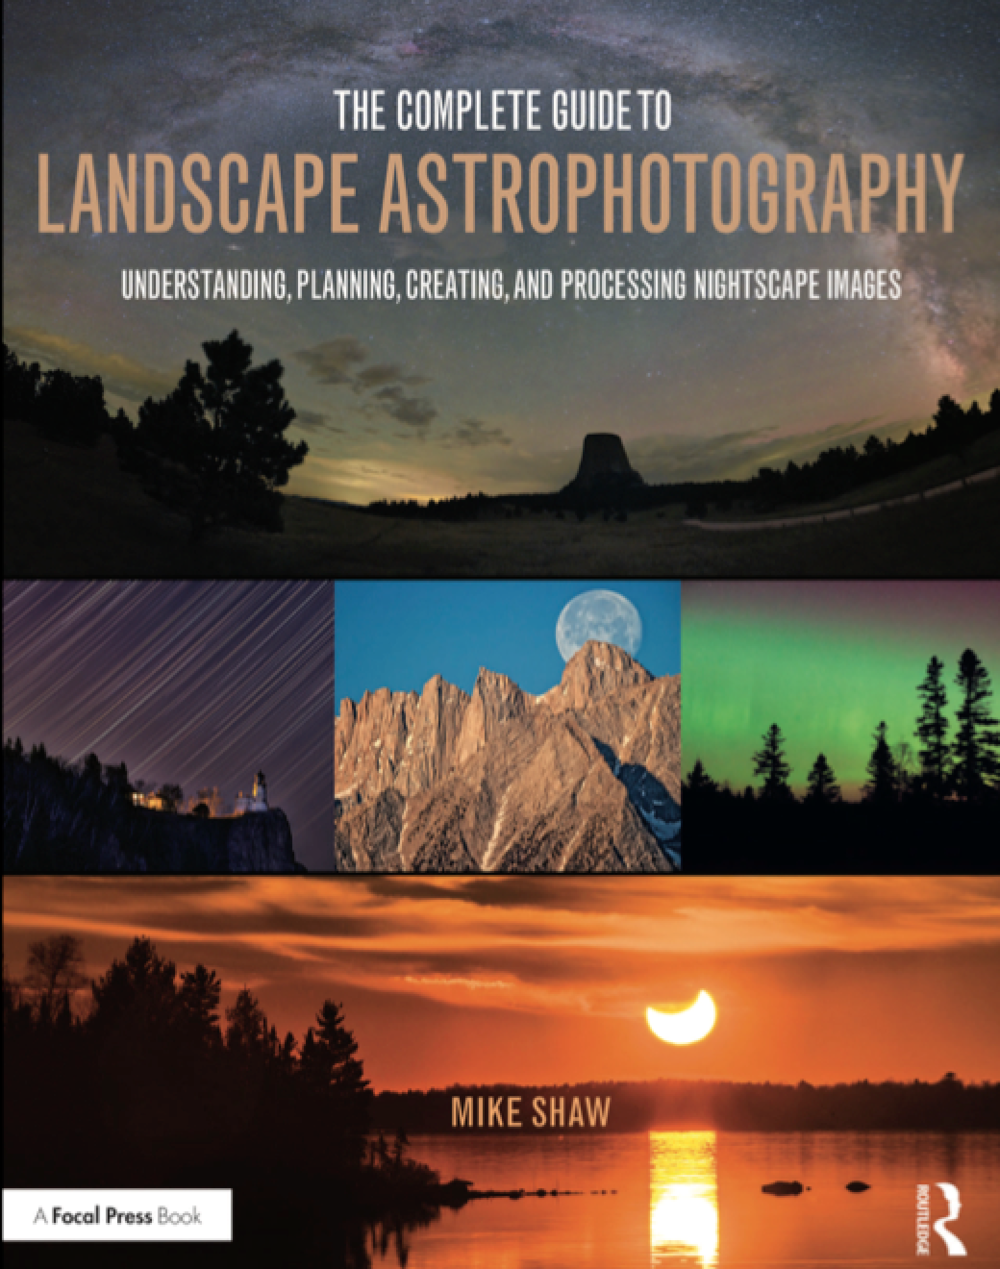 Complete Guide to Landscape Astrophotography (2017) - Understanding, Planning, Creating and Processing Nightscape Images